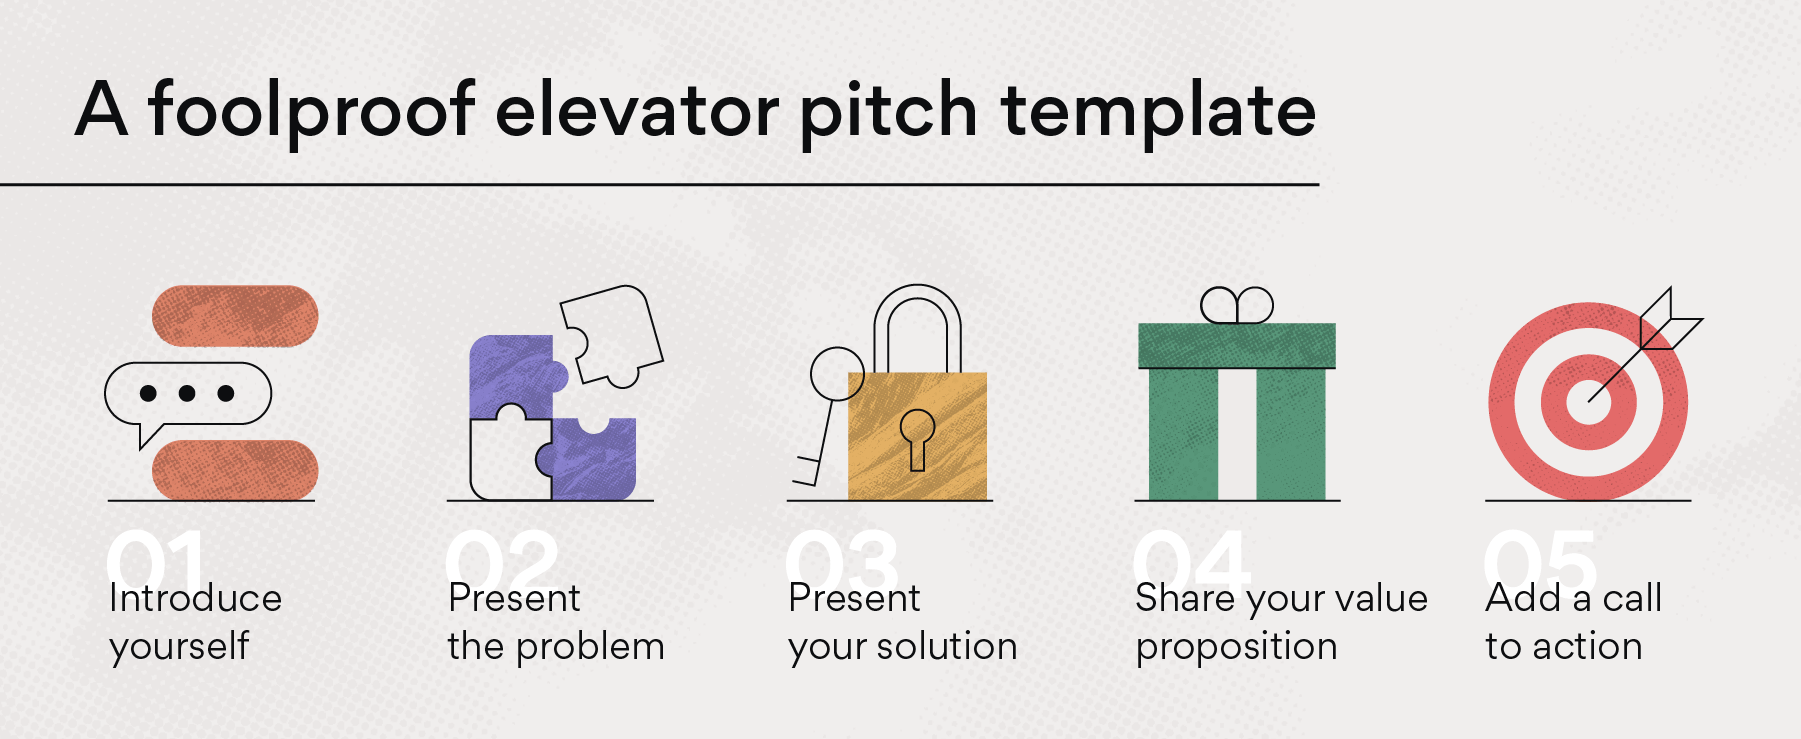 A foolproof elevator pitch template